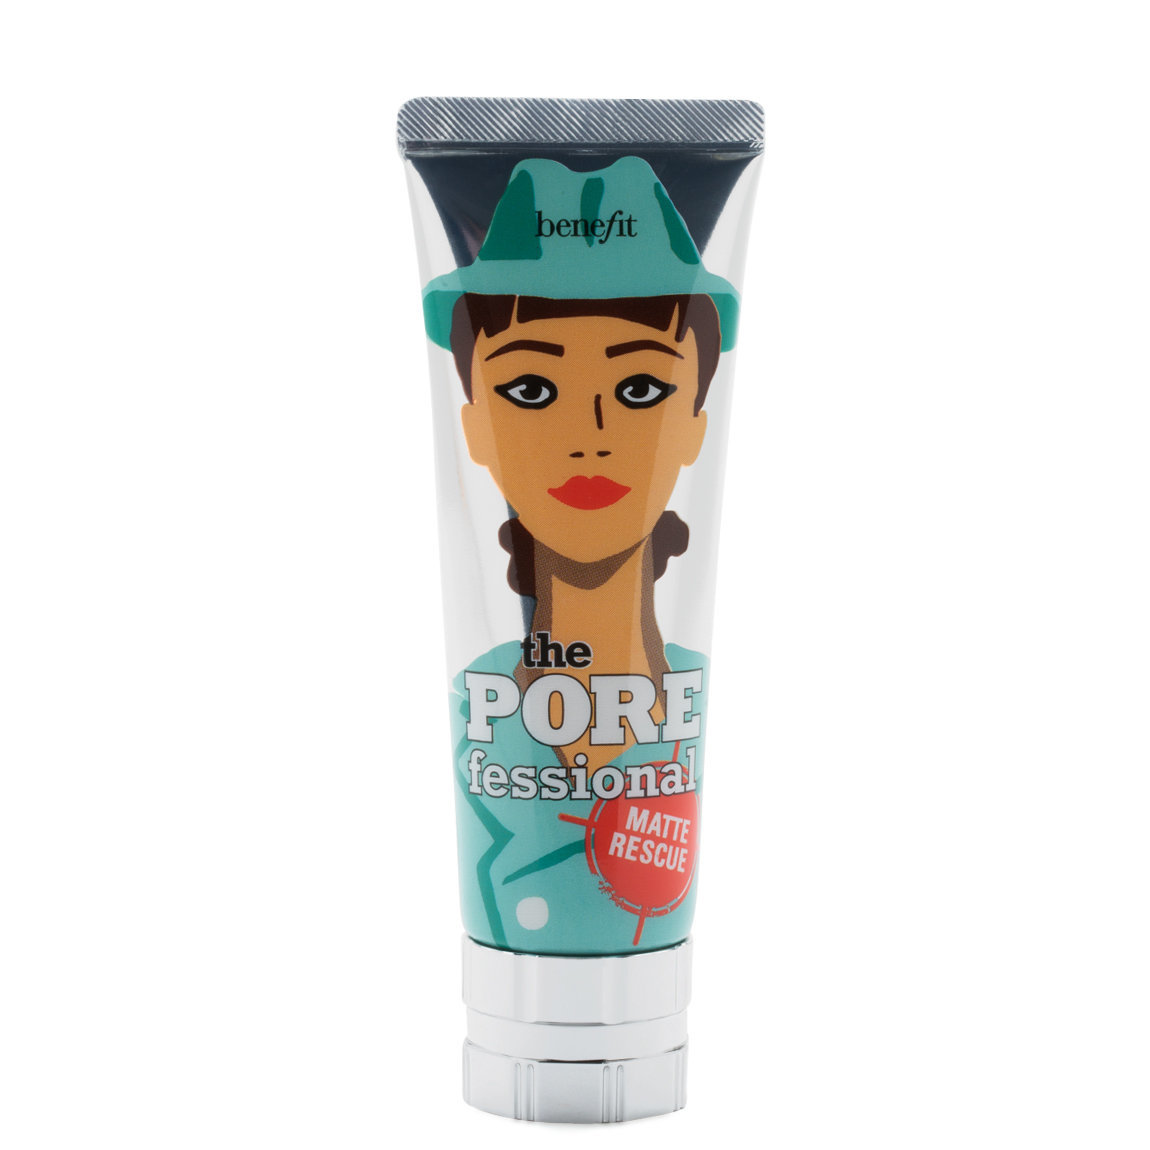 Benefit Cosmetics The POREfessional Matte Rescue Gel product smear.